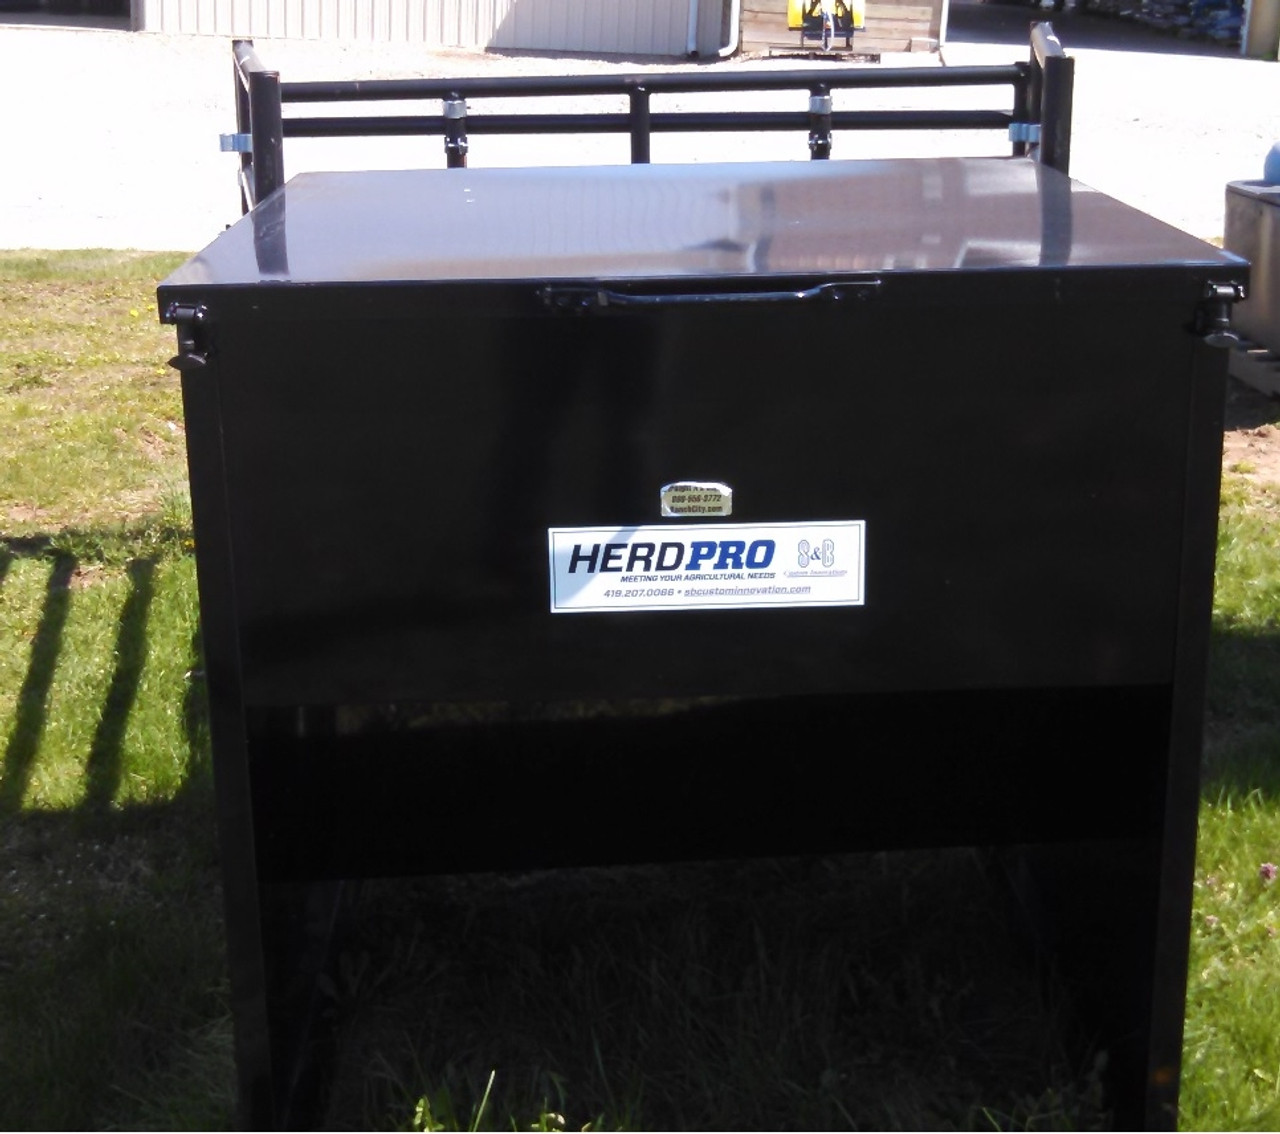 HerdPro Heavy Duty Creep Feeder